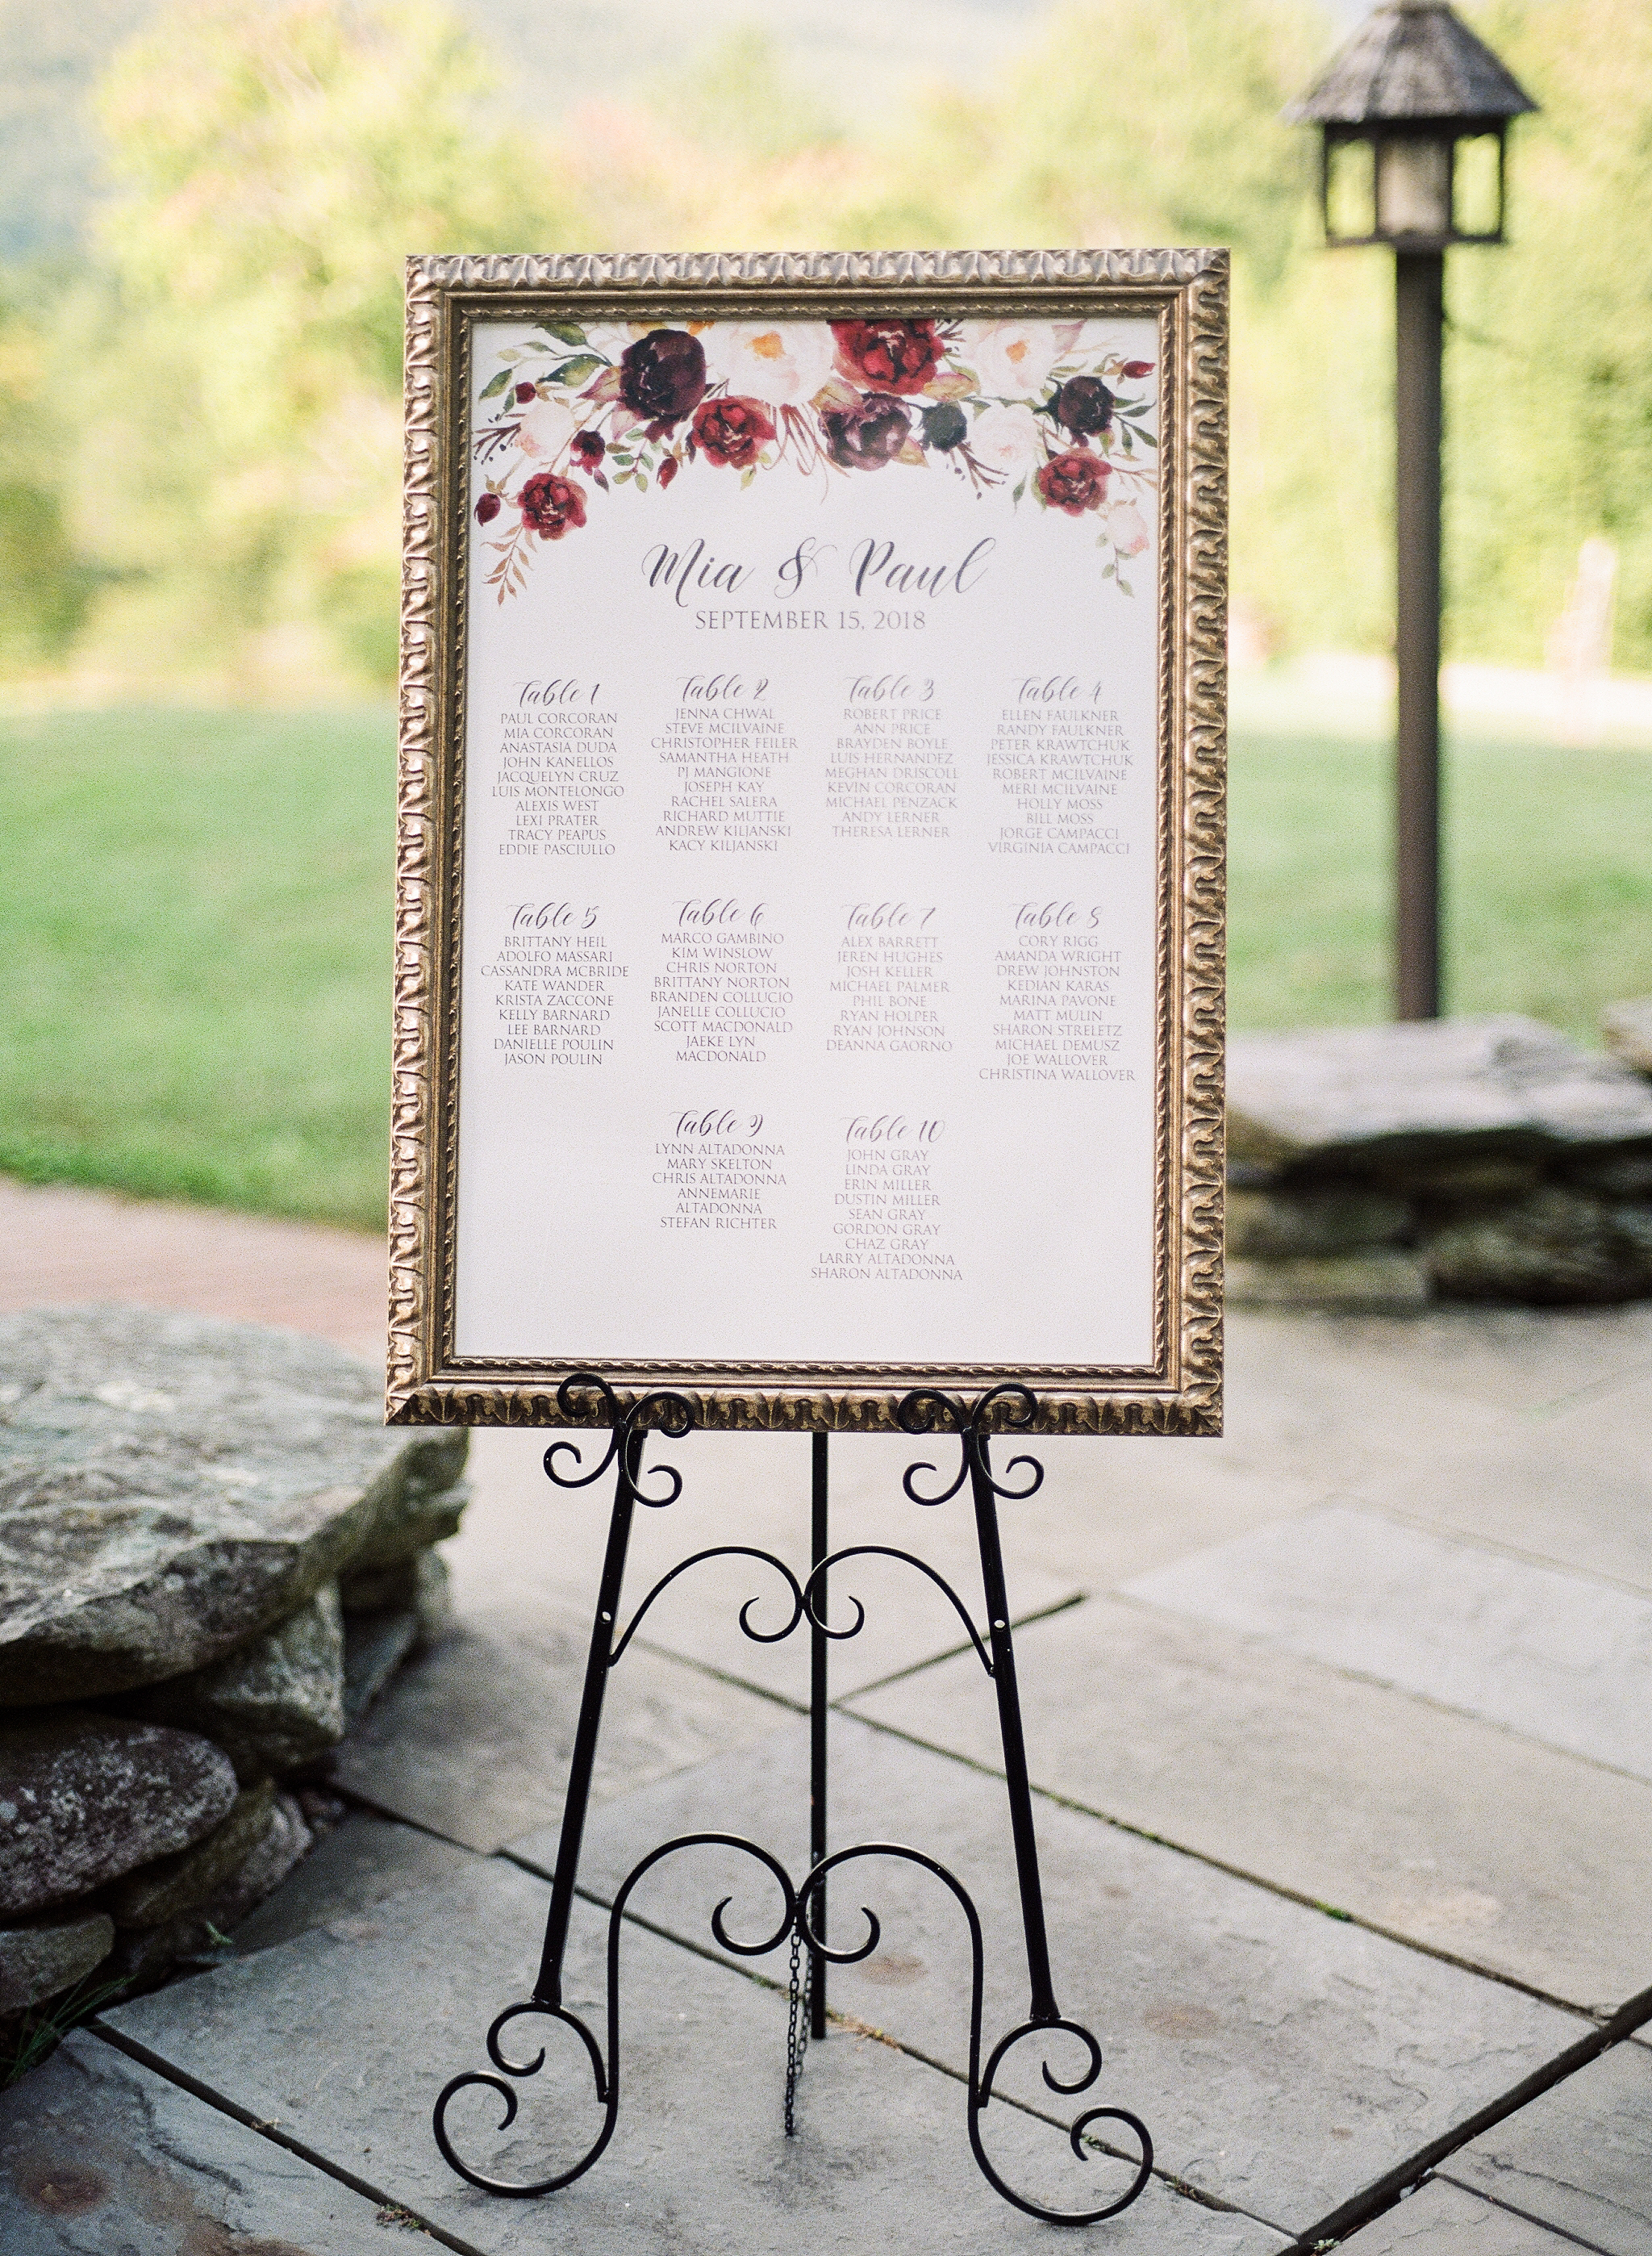 Stowe Vermont Wedding - Andrea Rodway Photography